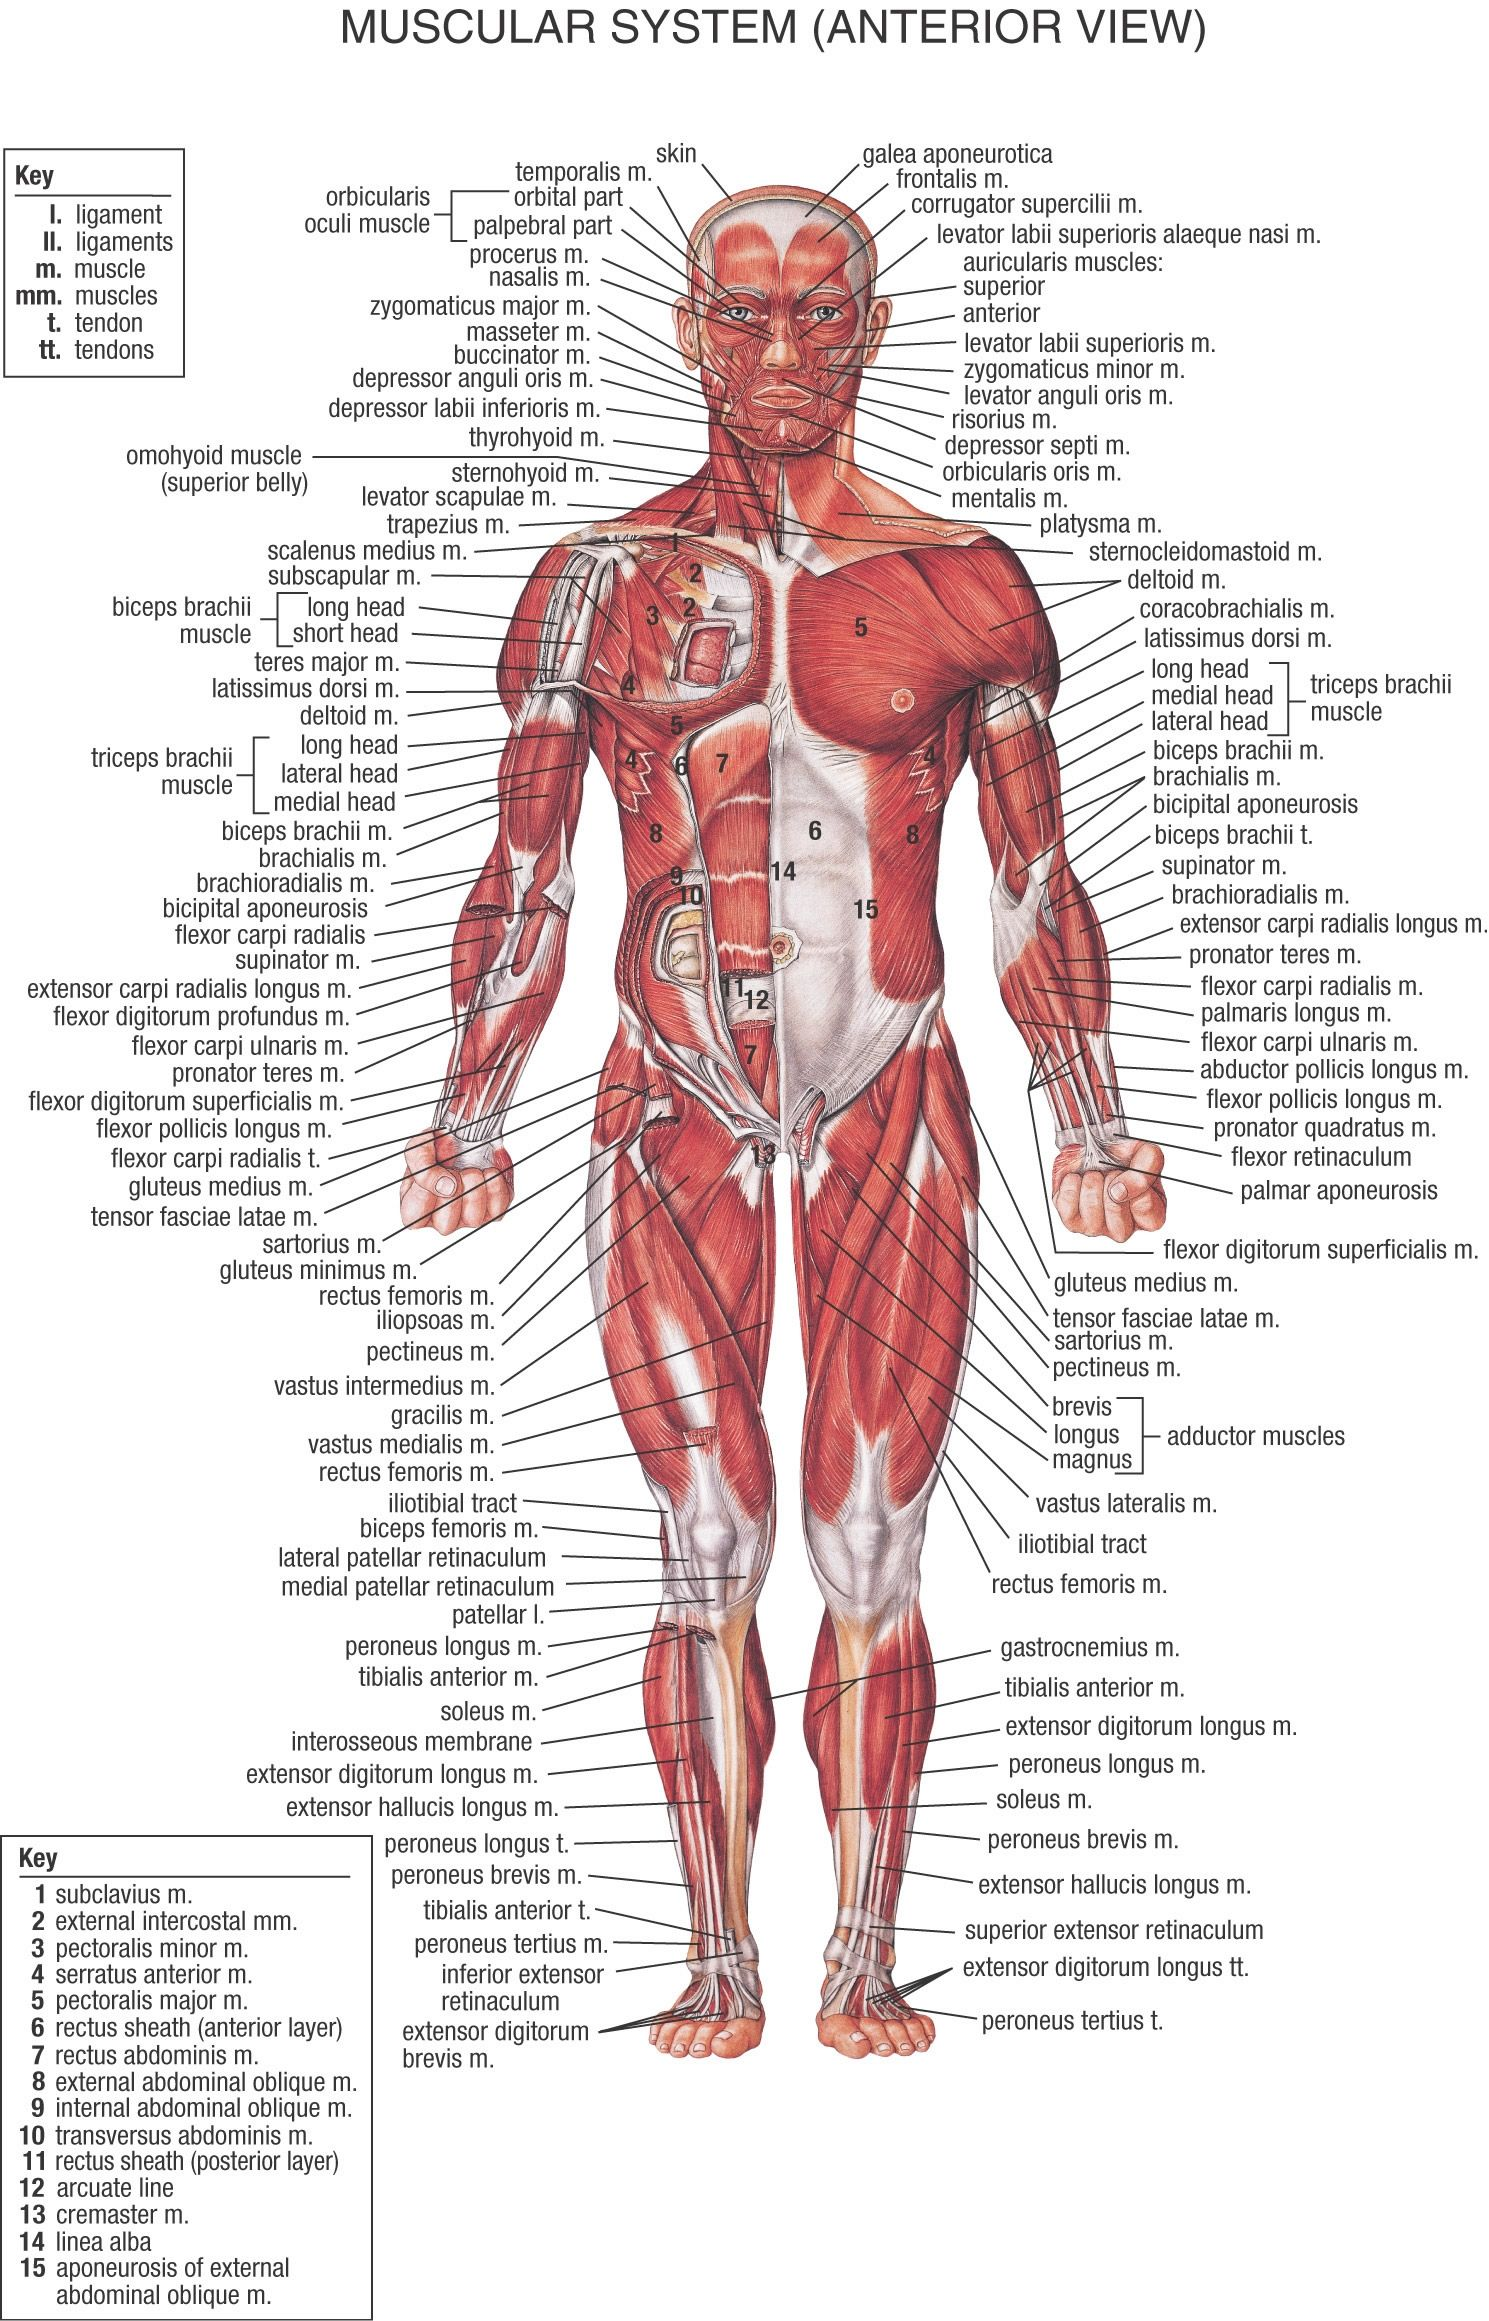 The Muscular System | Anterior View | Personal training resources ...